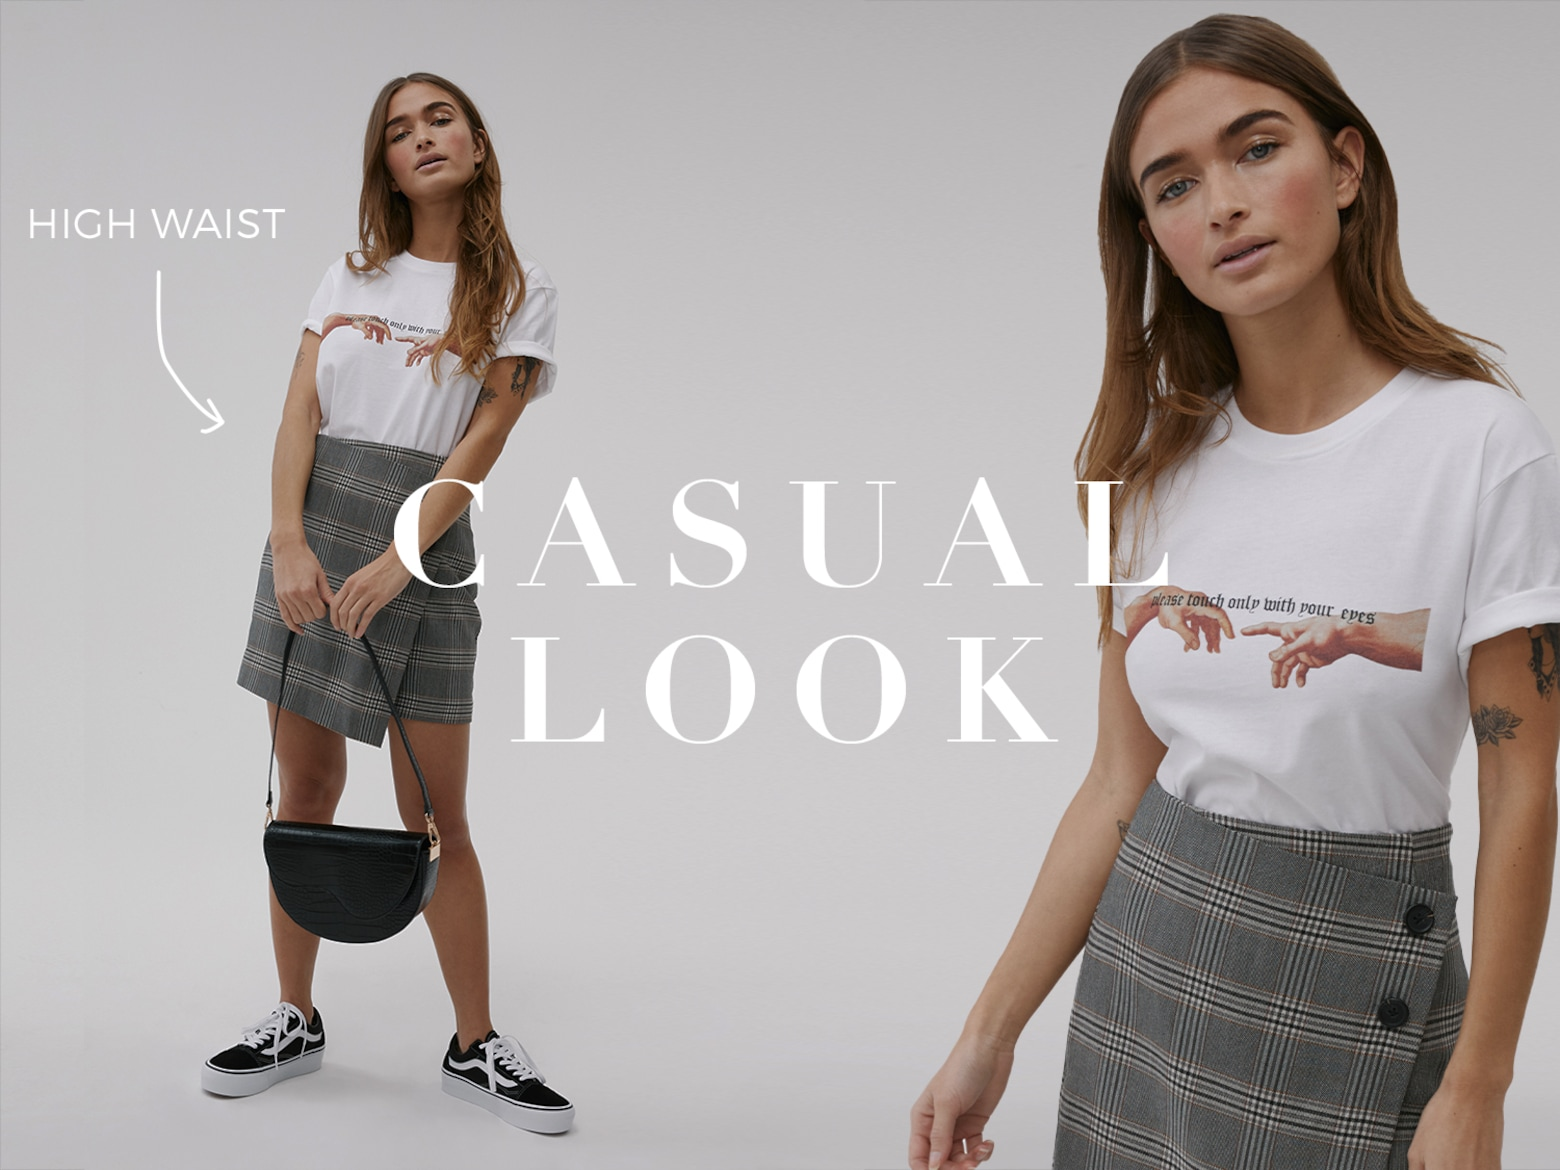 Jeff - Casual Skirt Look